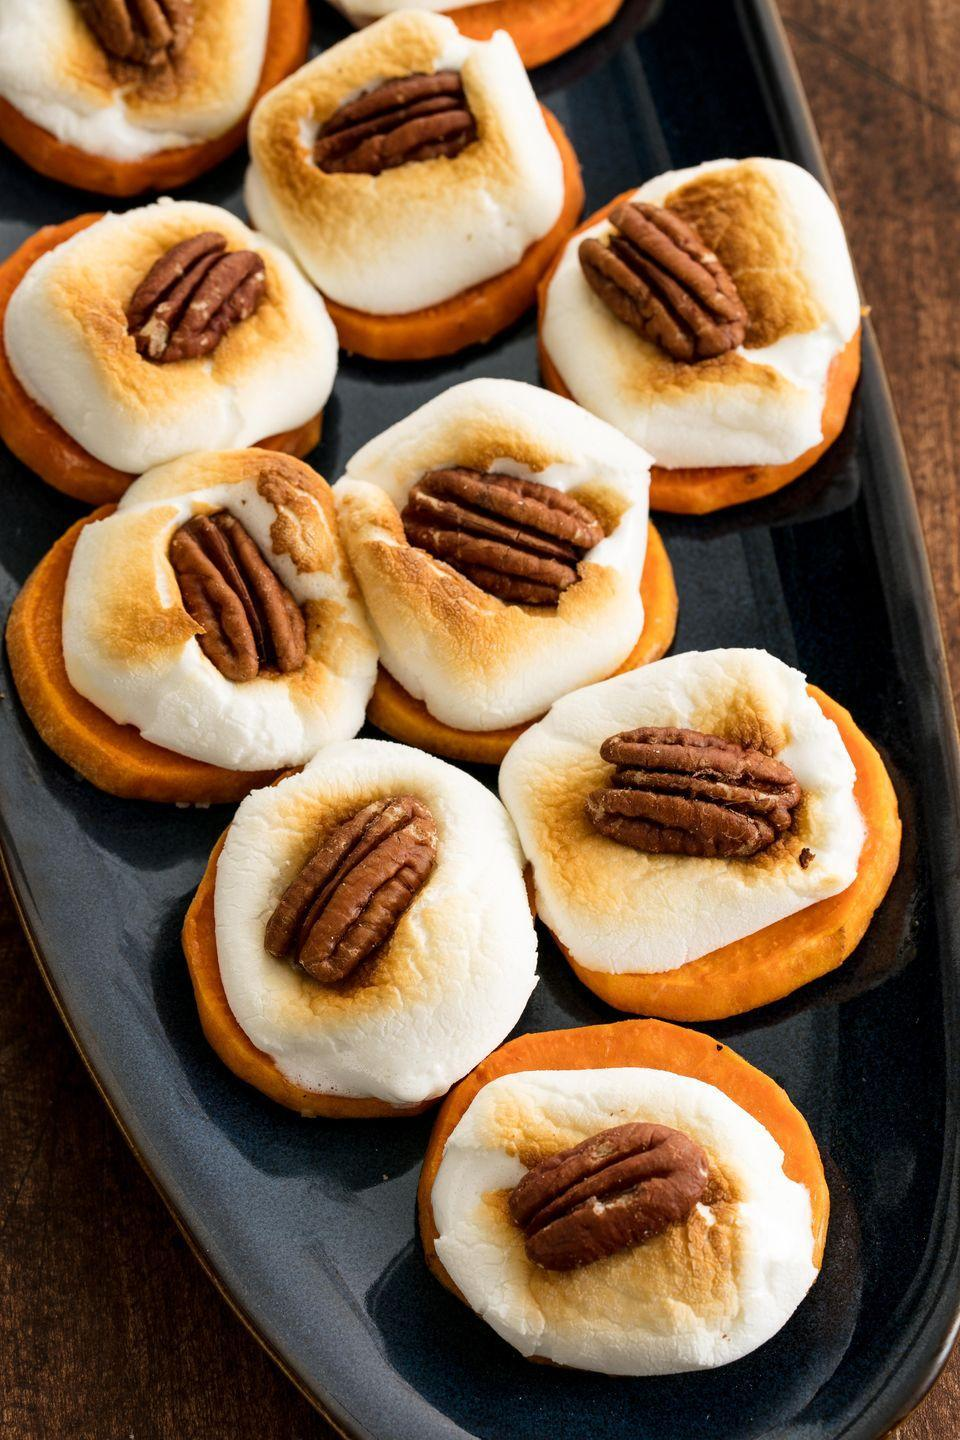 "<p>Turn the classic casserole into a mini dessert!</p><p>Get the recipe from <a href=""https://www.delish.com/cooking/recipe-ideas/recipes/a50000/sweet-potato-bites-recipe/"" rel=""nofollow noopener"" target=""_blank"" data-ylk=""slk:Delish"" class=""link rapid-noclick-resp"">Delish</a>. </p>"